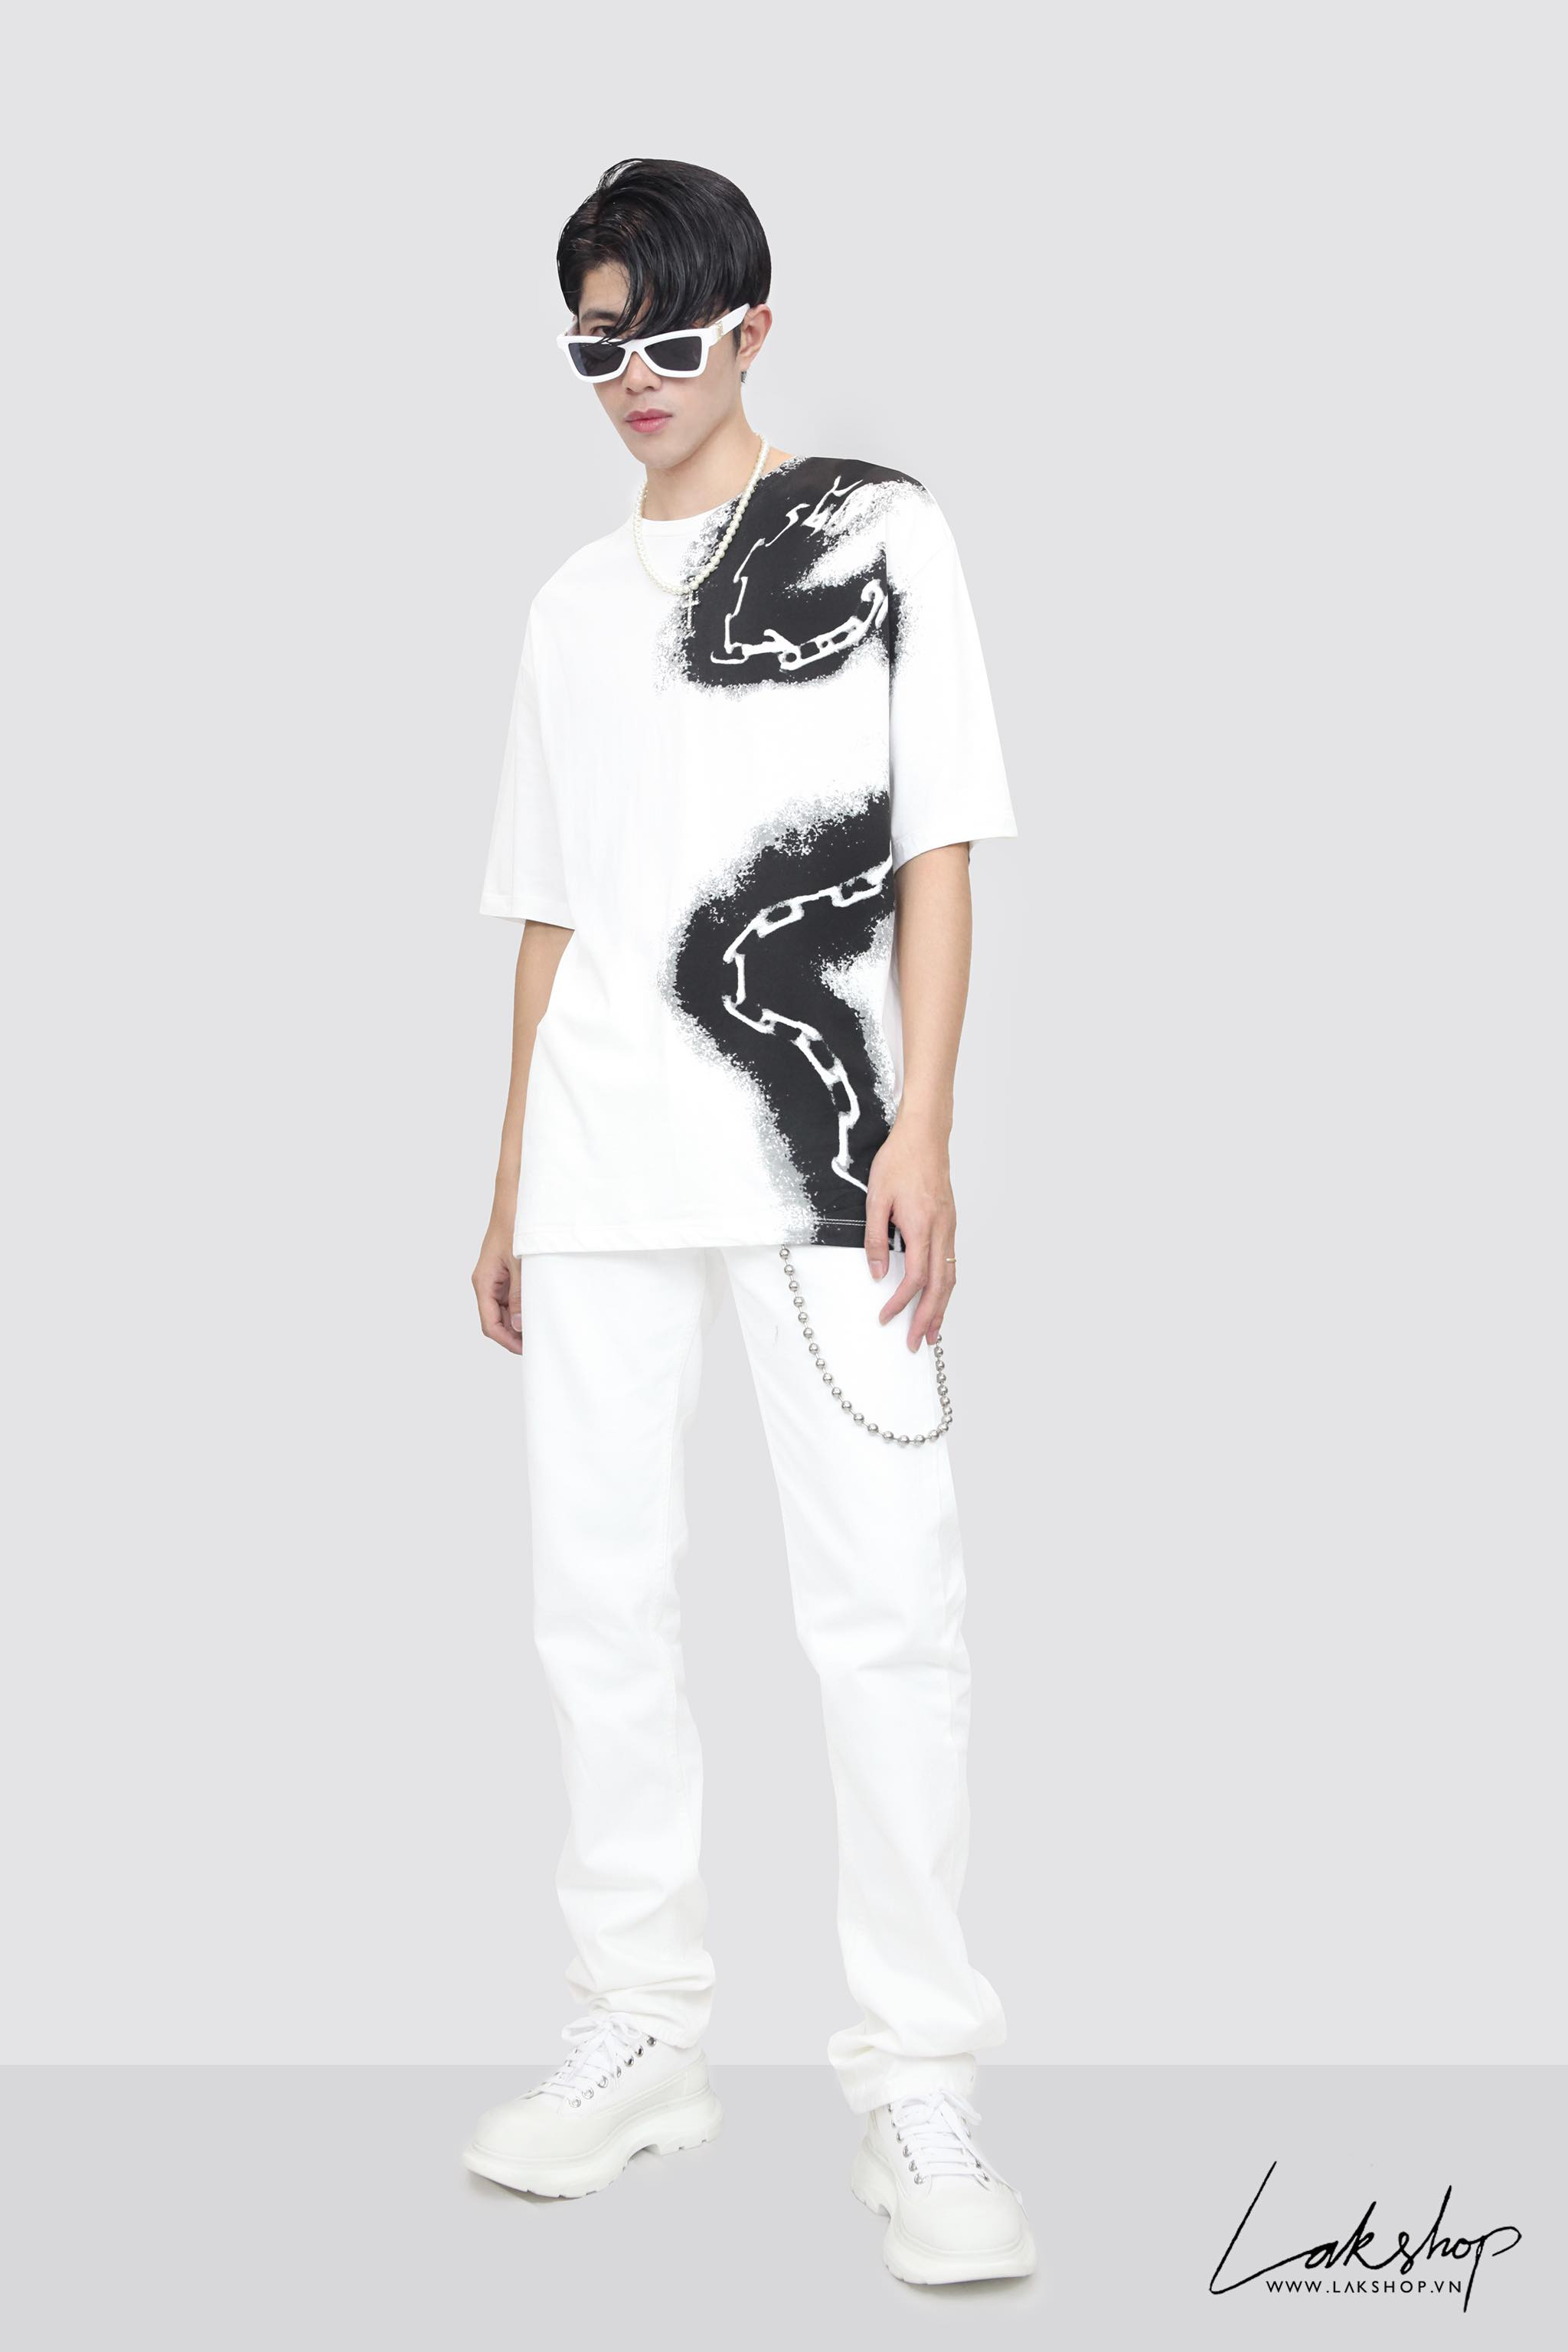 Louis Vuitton With Spray Chain Print Oversize White T-shirt